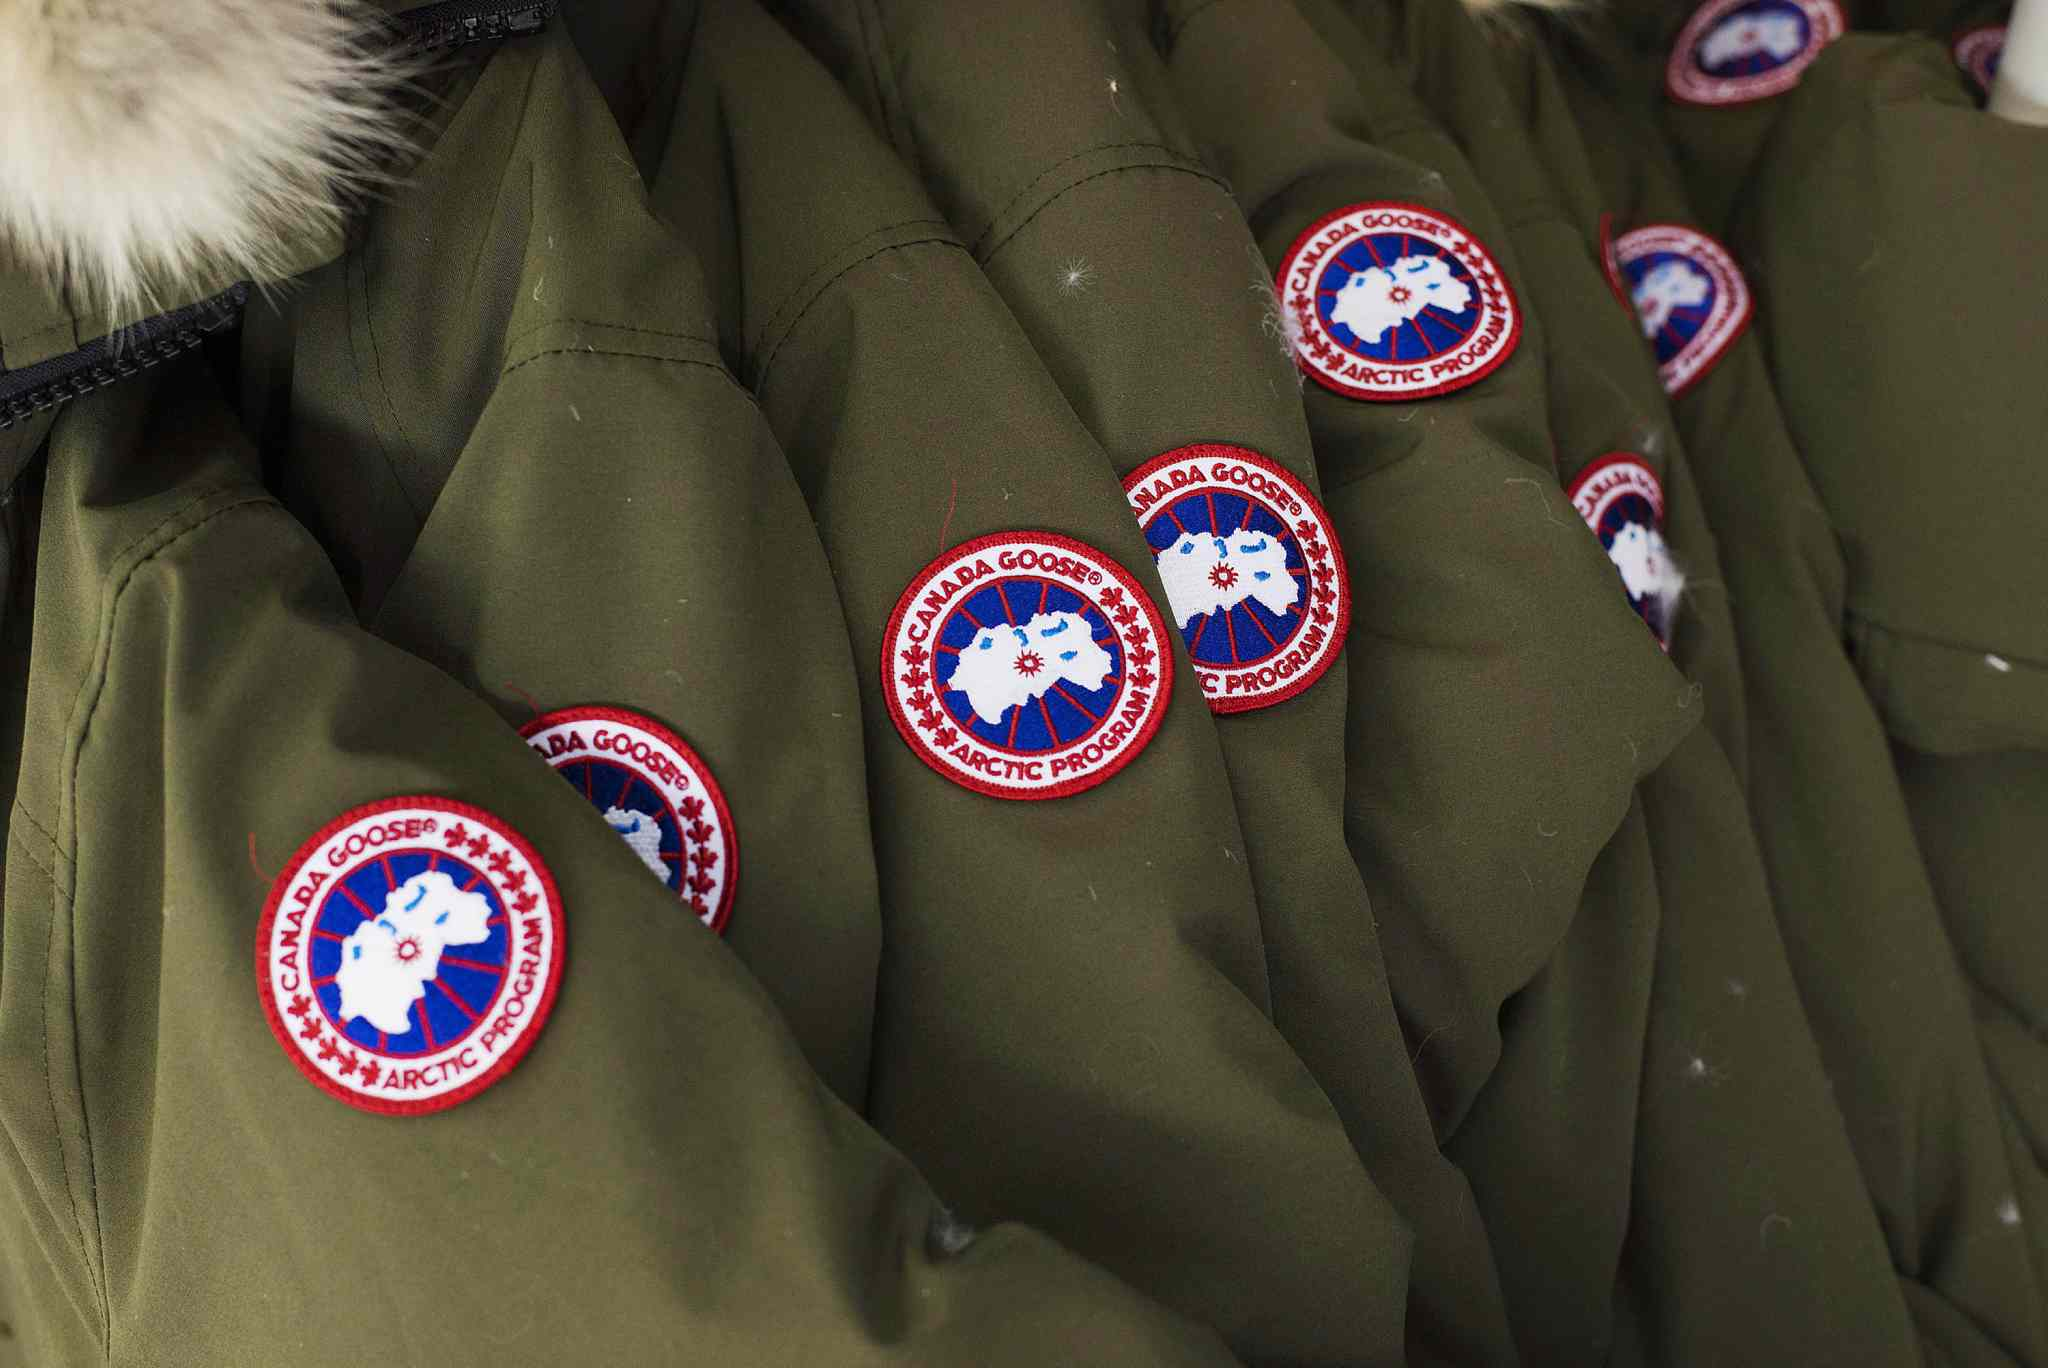 Canada Goose Inc. is trying to